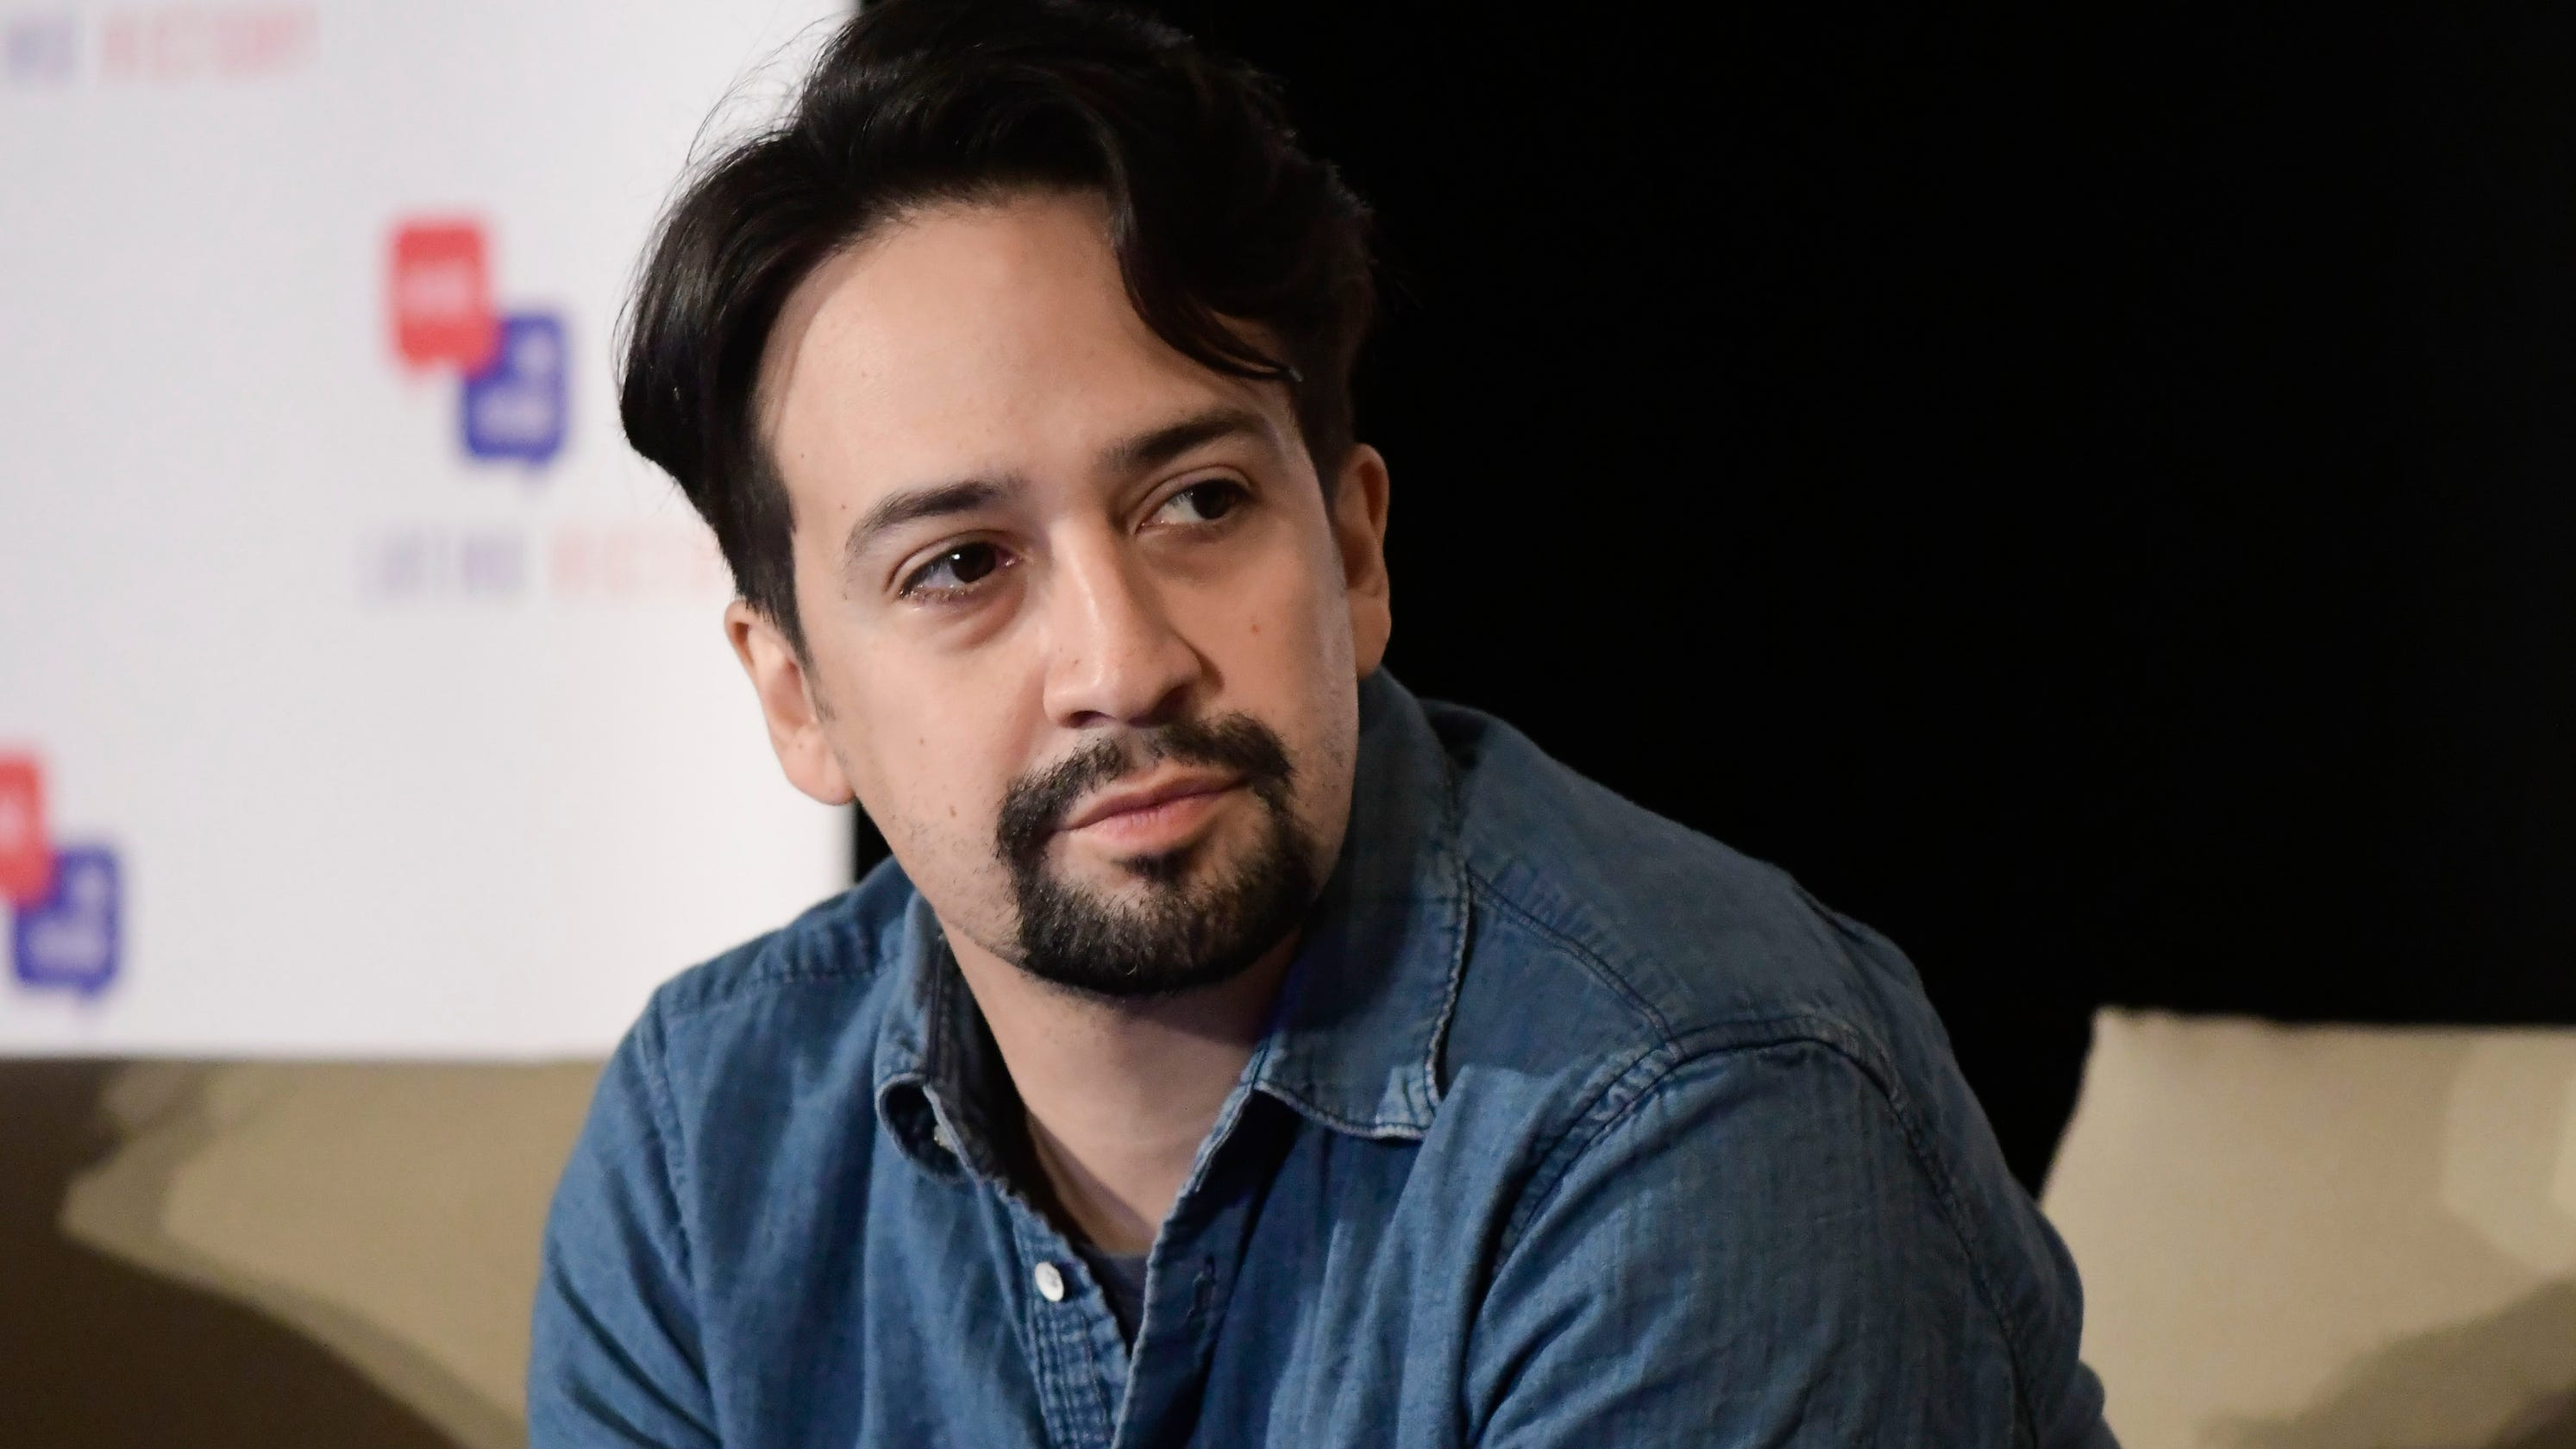 'In the Heights' Lin-Manuel Miranda apologizes for lack of Afro-Latino representation: 'We fell short'